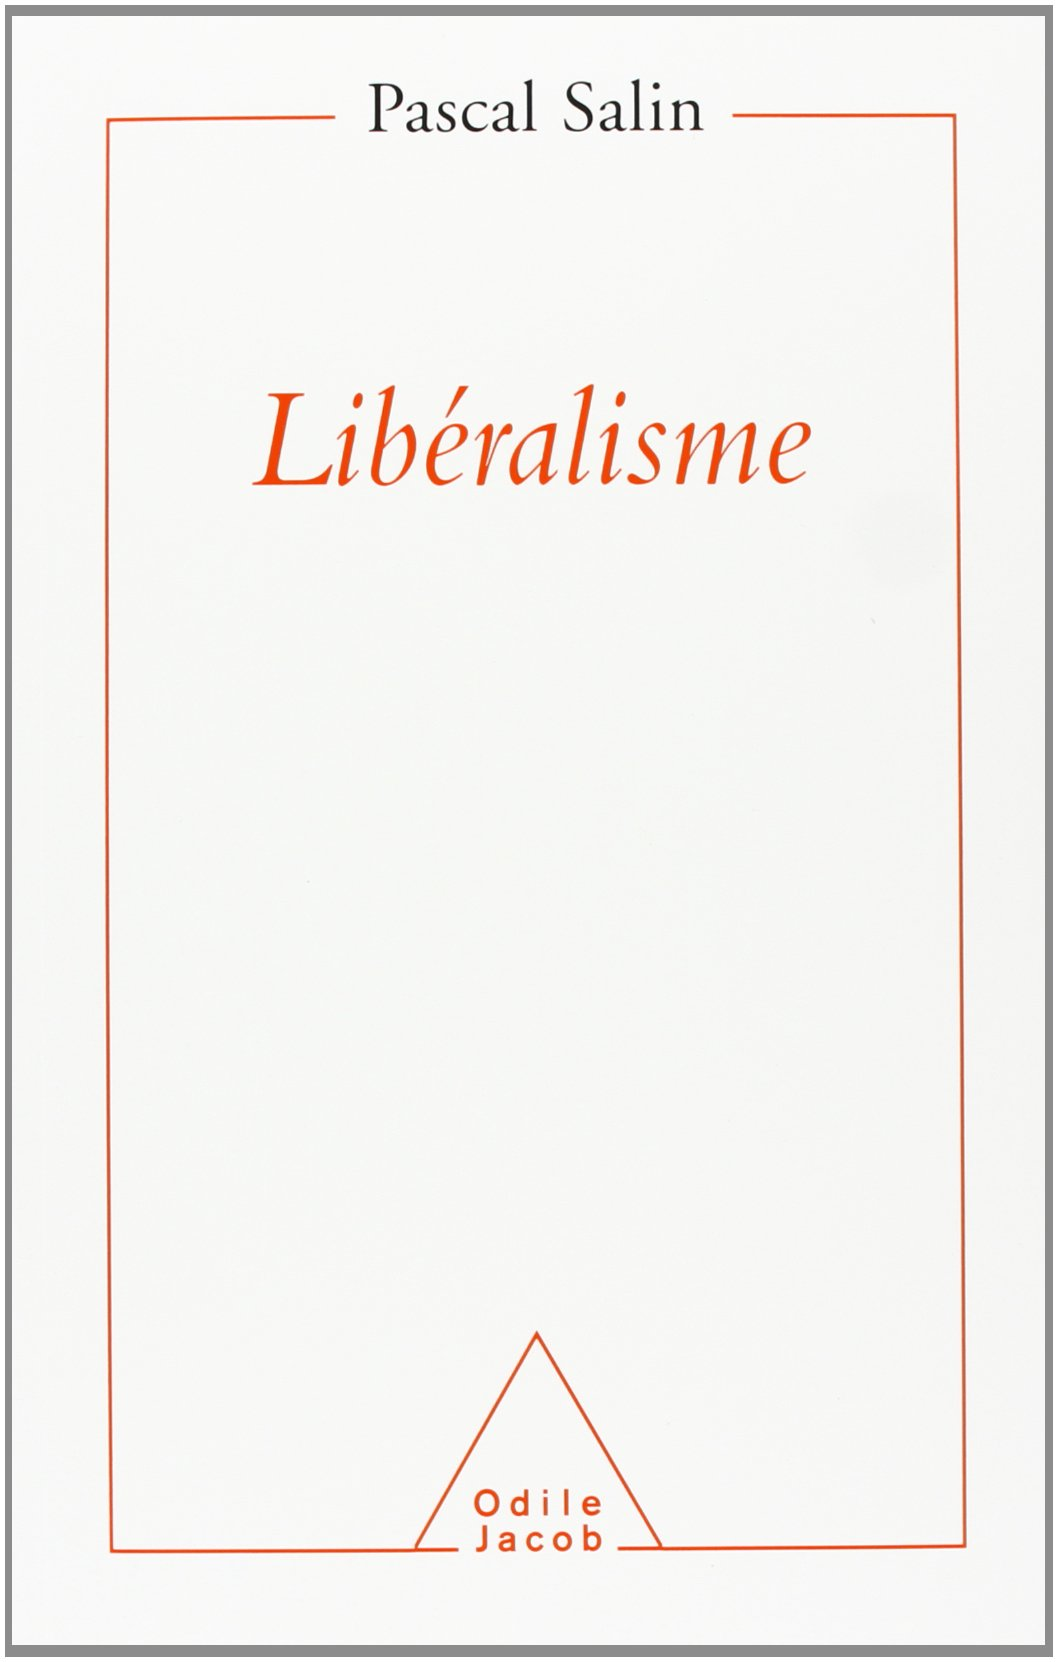 Libéralisme Broché – 15 avril 2000 Pascal Salin Editions Odile Jacob 2738108091 Libéralisme - France